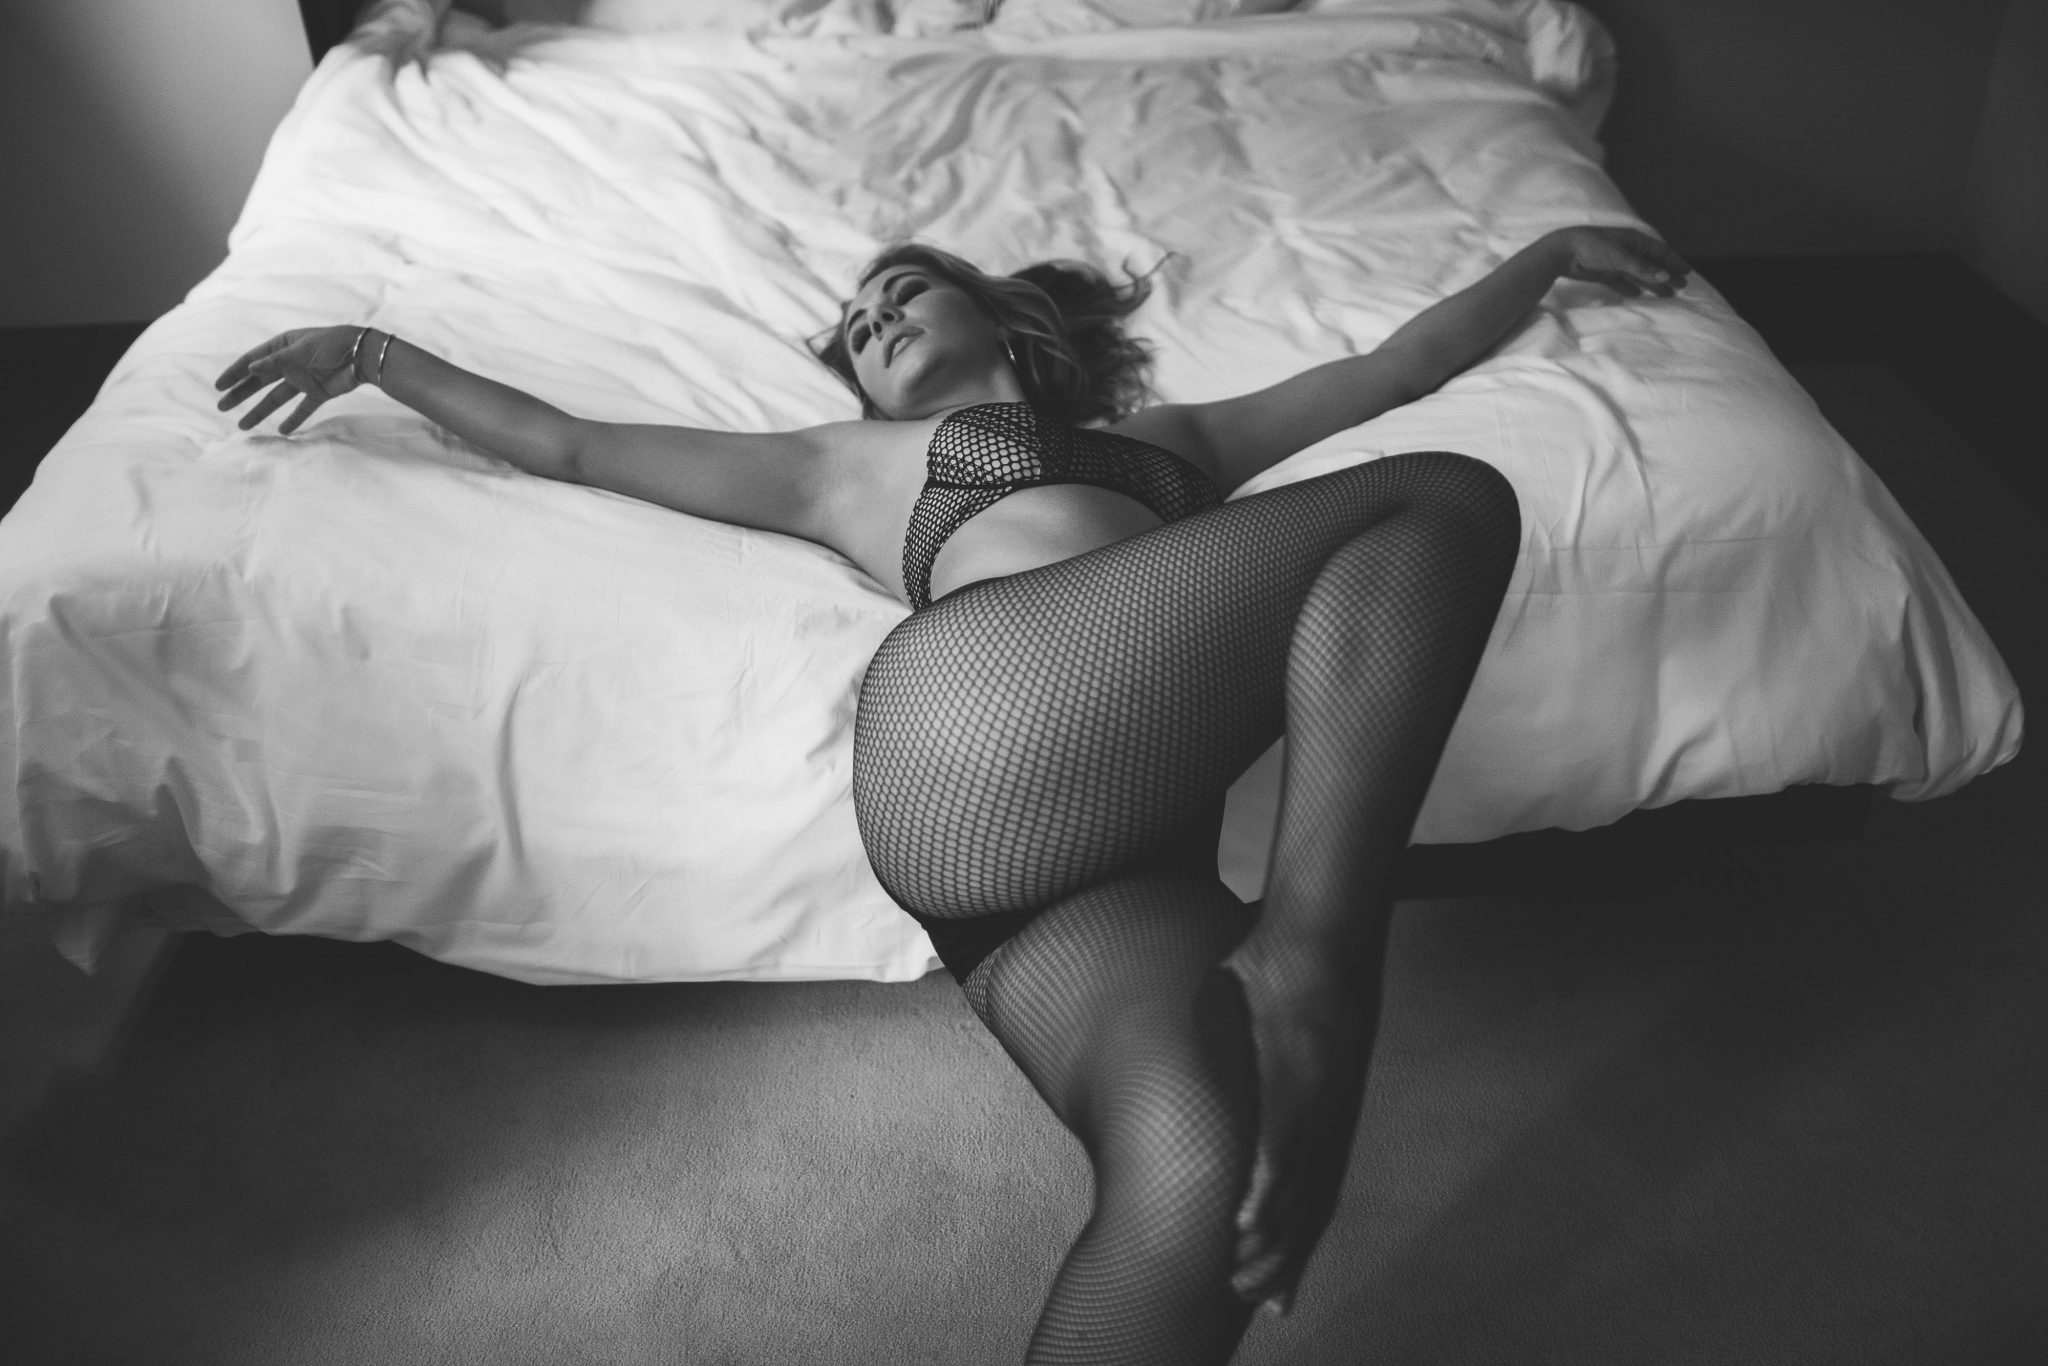 A woman wearing fishnet lingerie in a dramatic boudoir pose